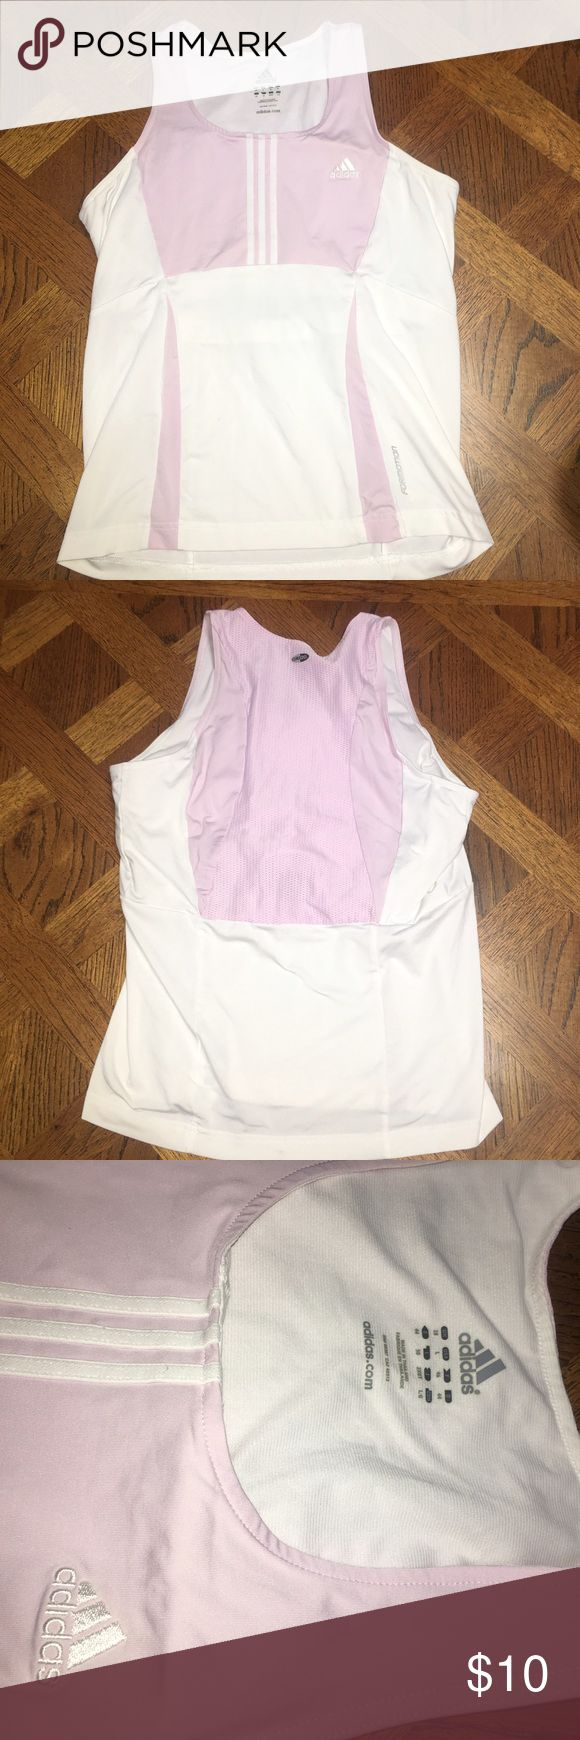 ADIDAS workout shirt SUPER CUTE light pink ADIDAS workout shirt - this is honestly my favorite thing ever and it's so cute - amAzing condition and great quality  *will post more pics if requested* make an offer:)  bundle this with anything to save!! adidas Tops Tank Tops